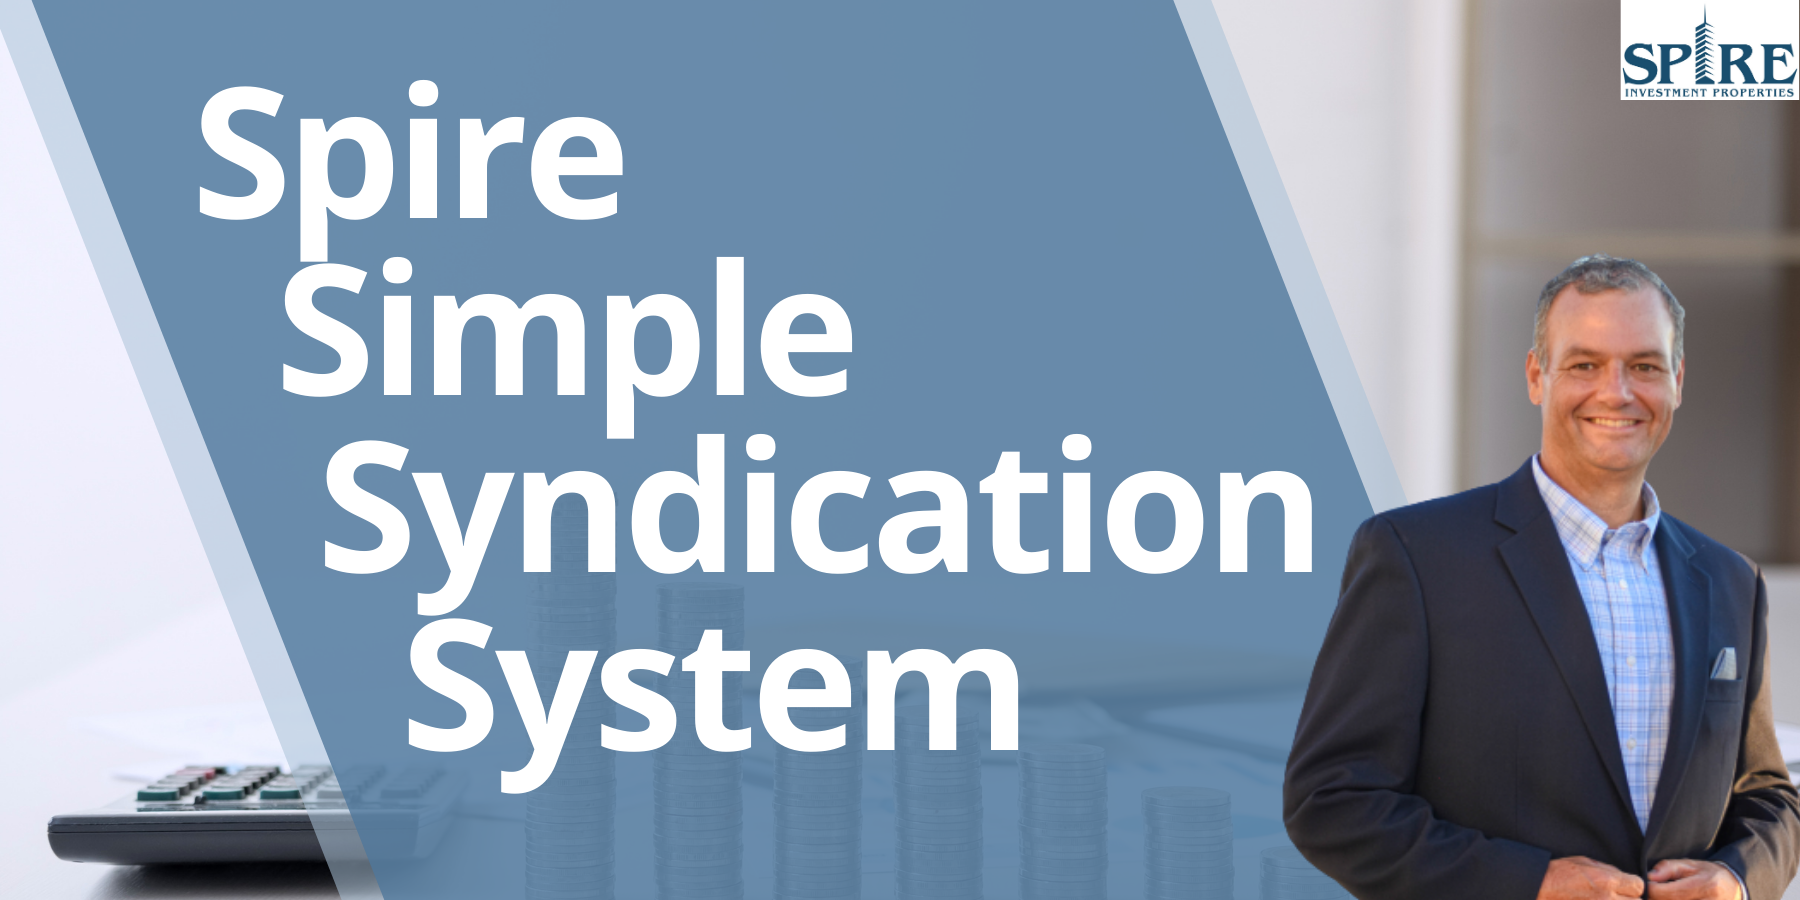 Spire Simple Syndication System (1)